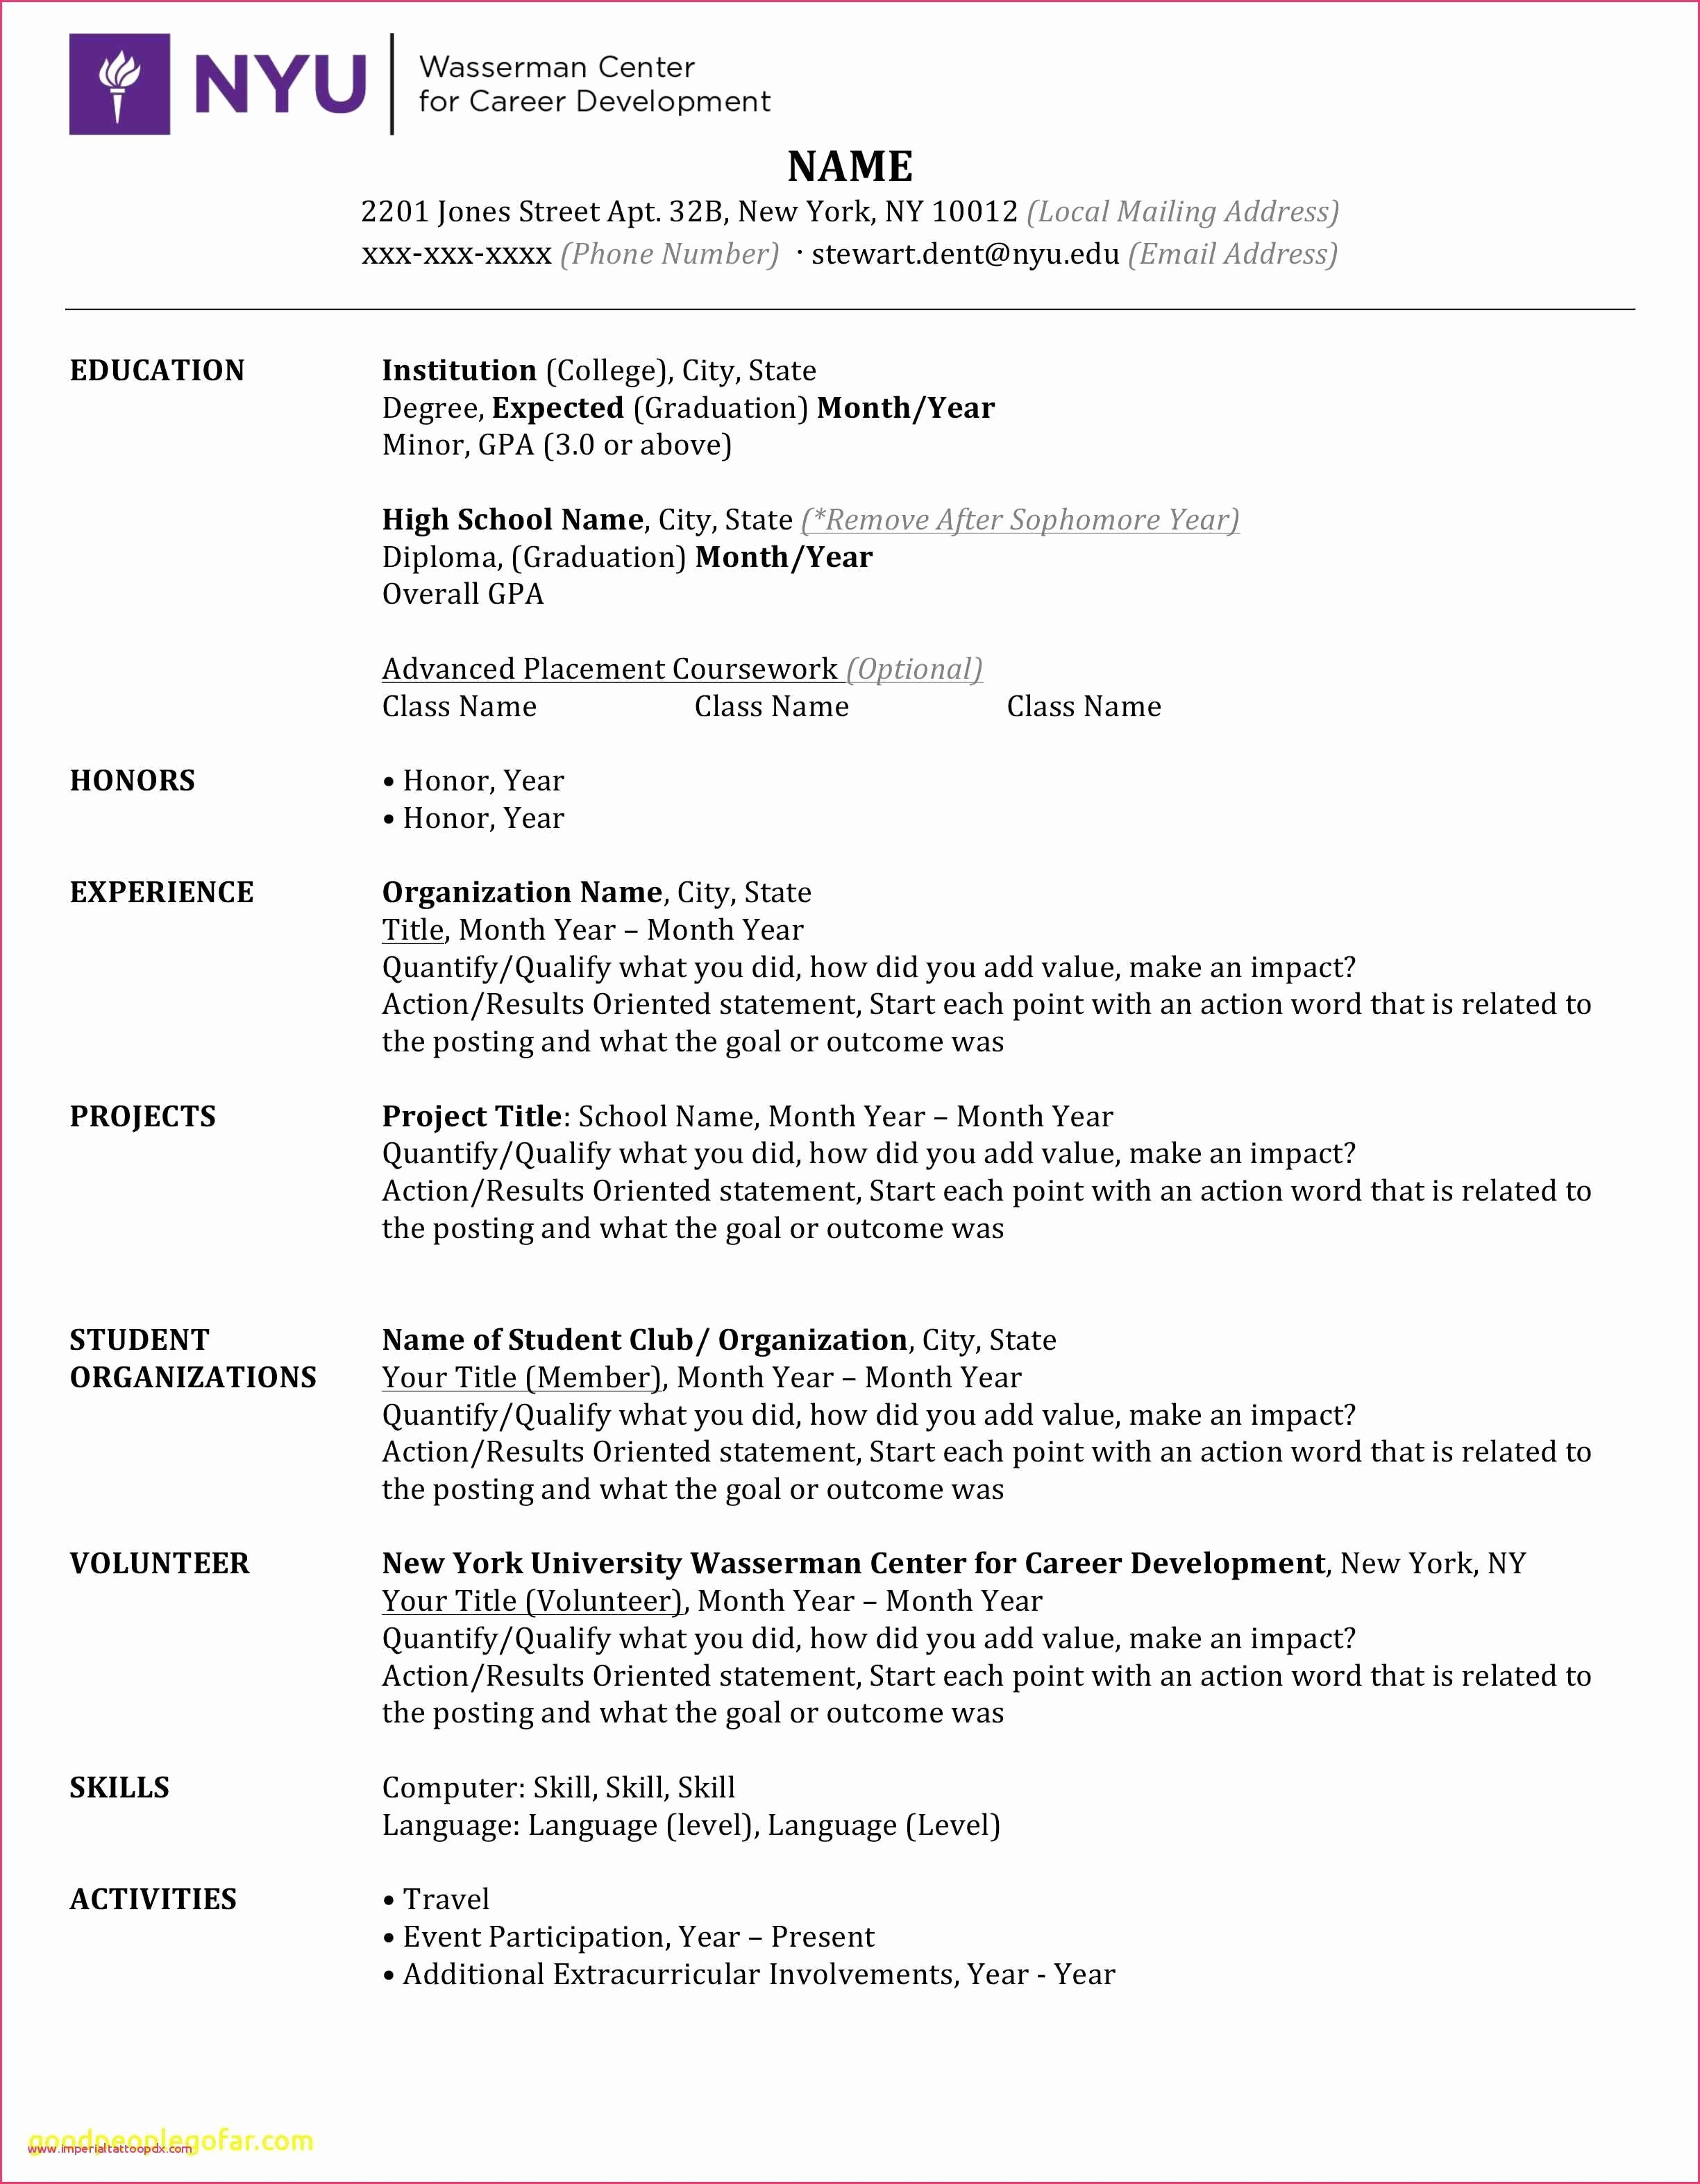 Microsoft Word Resume Templates 2007 Beautiful 46 Resume Template Download for Microsoft Word 2007